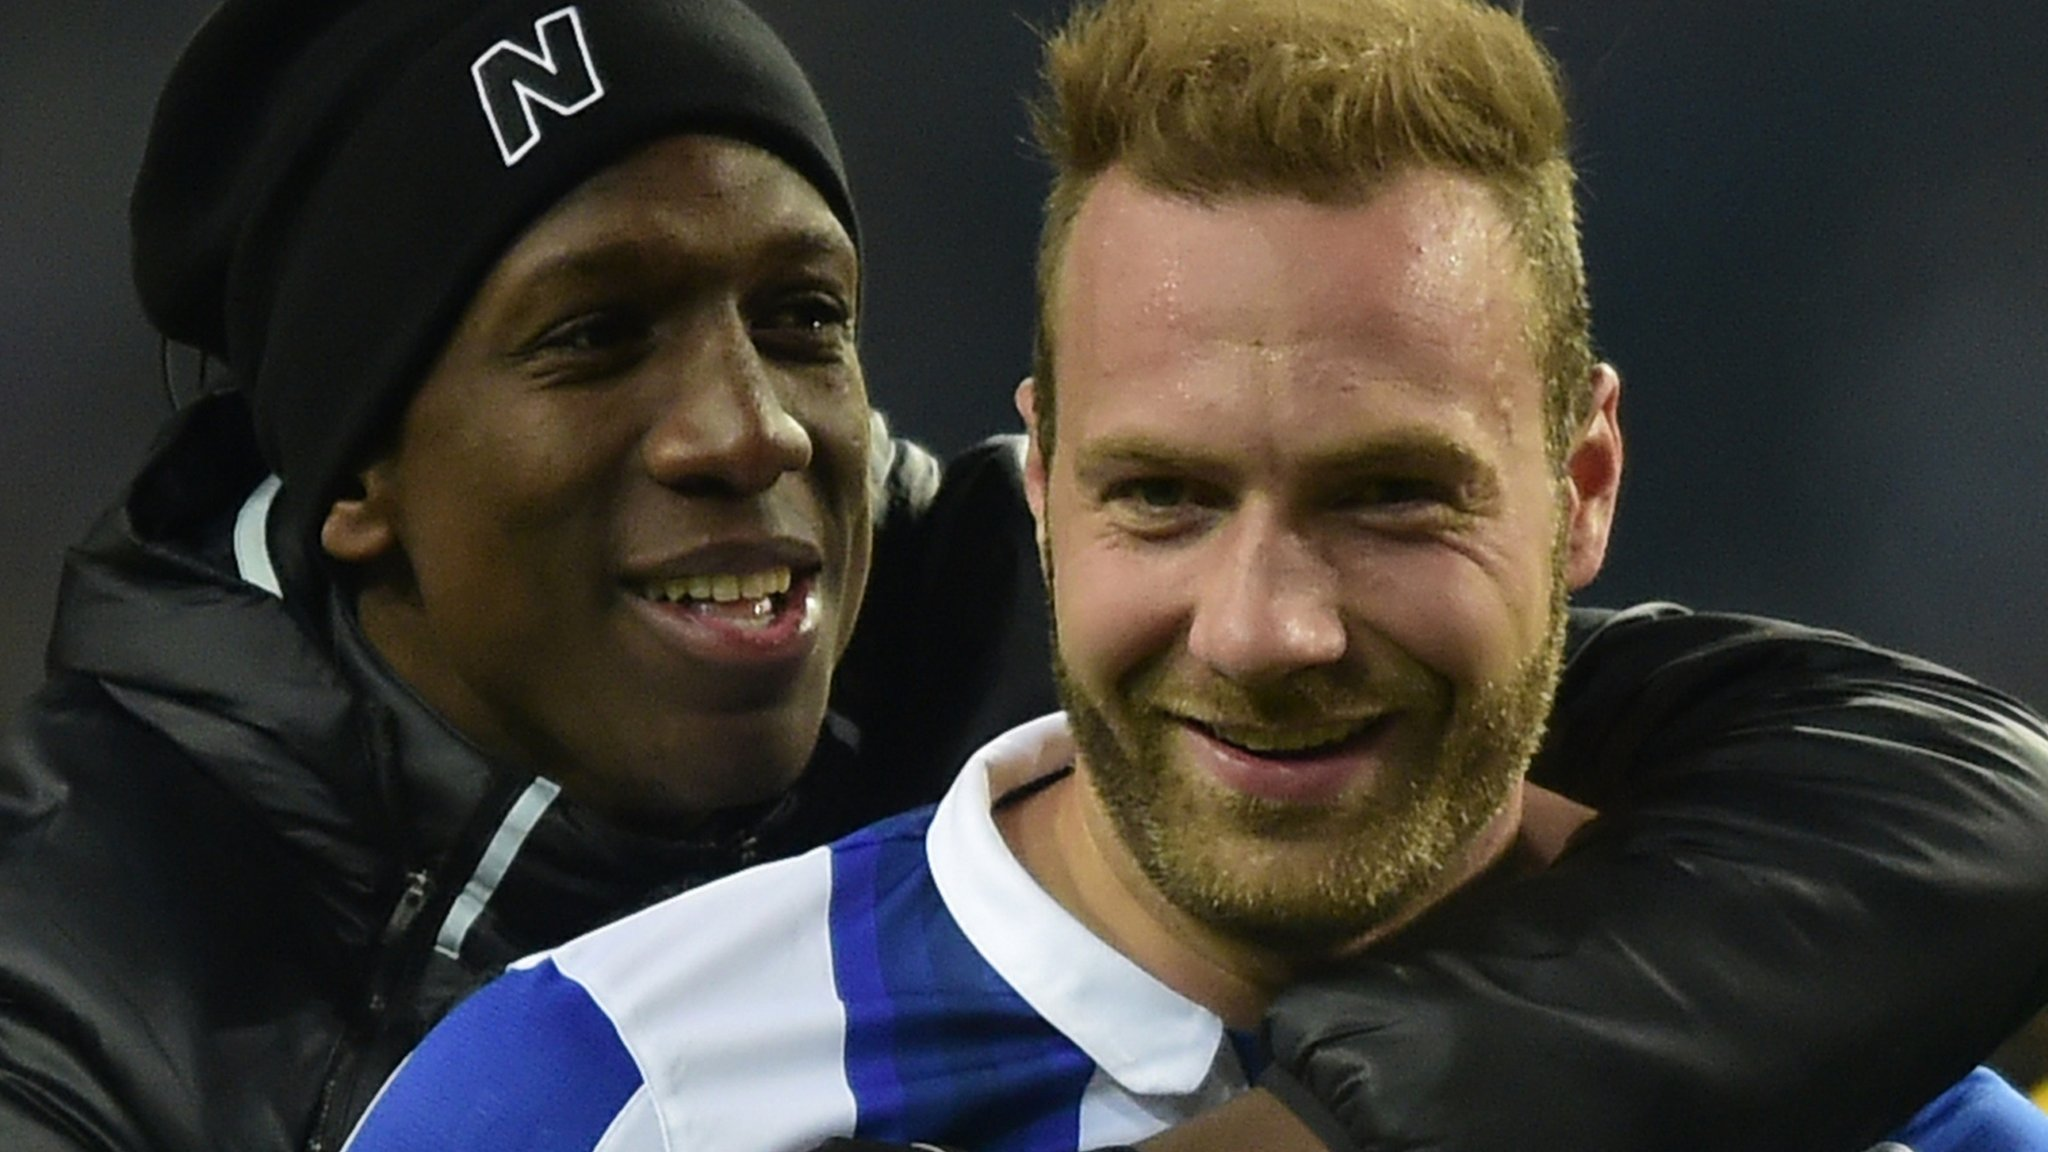 Huddersfield sign striker Depoitre for club-record fee